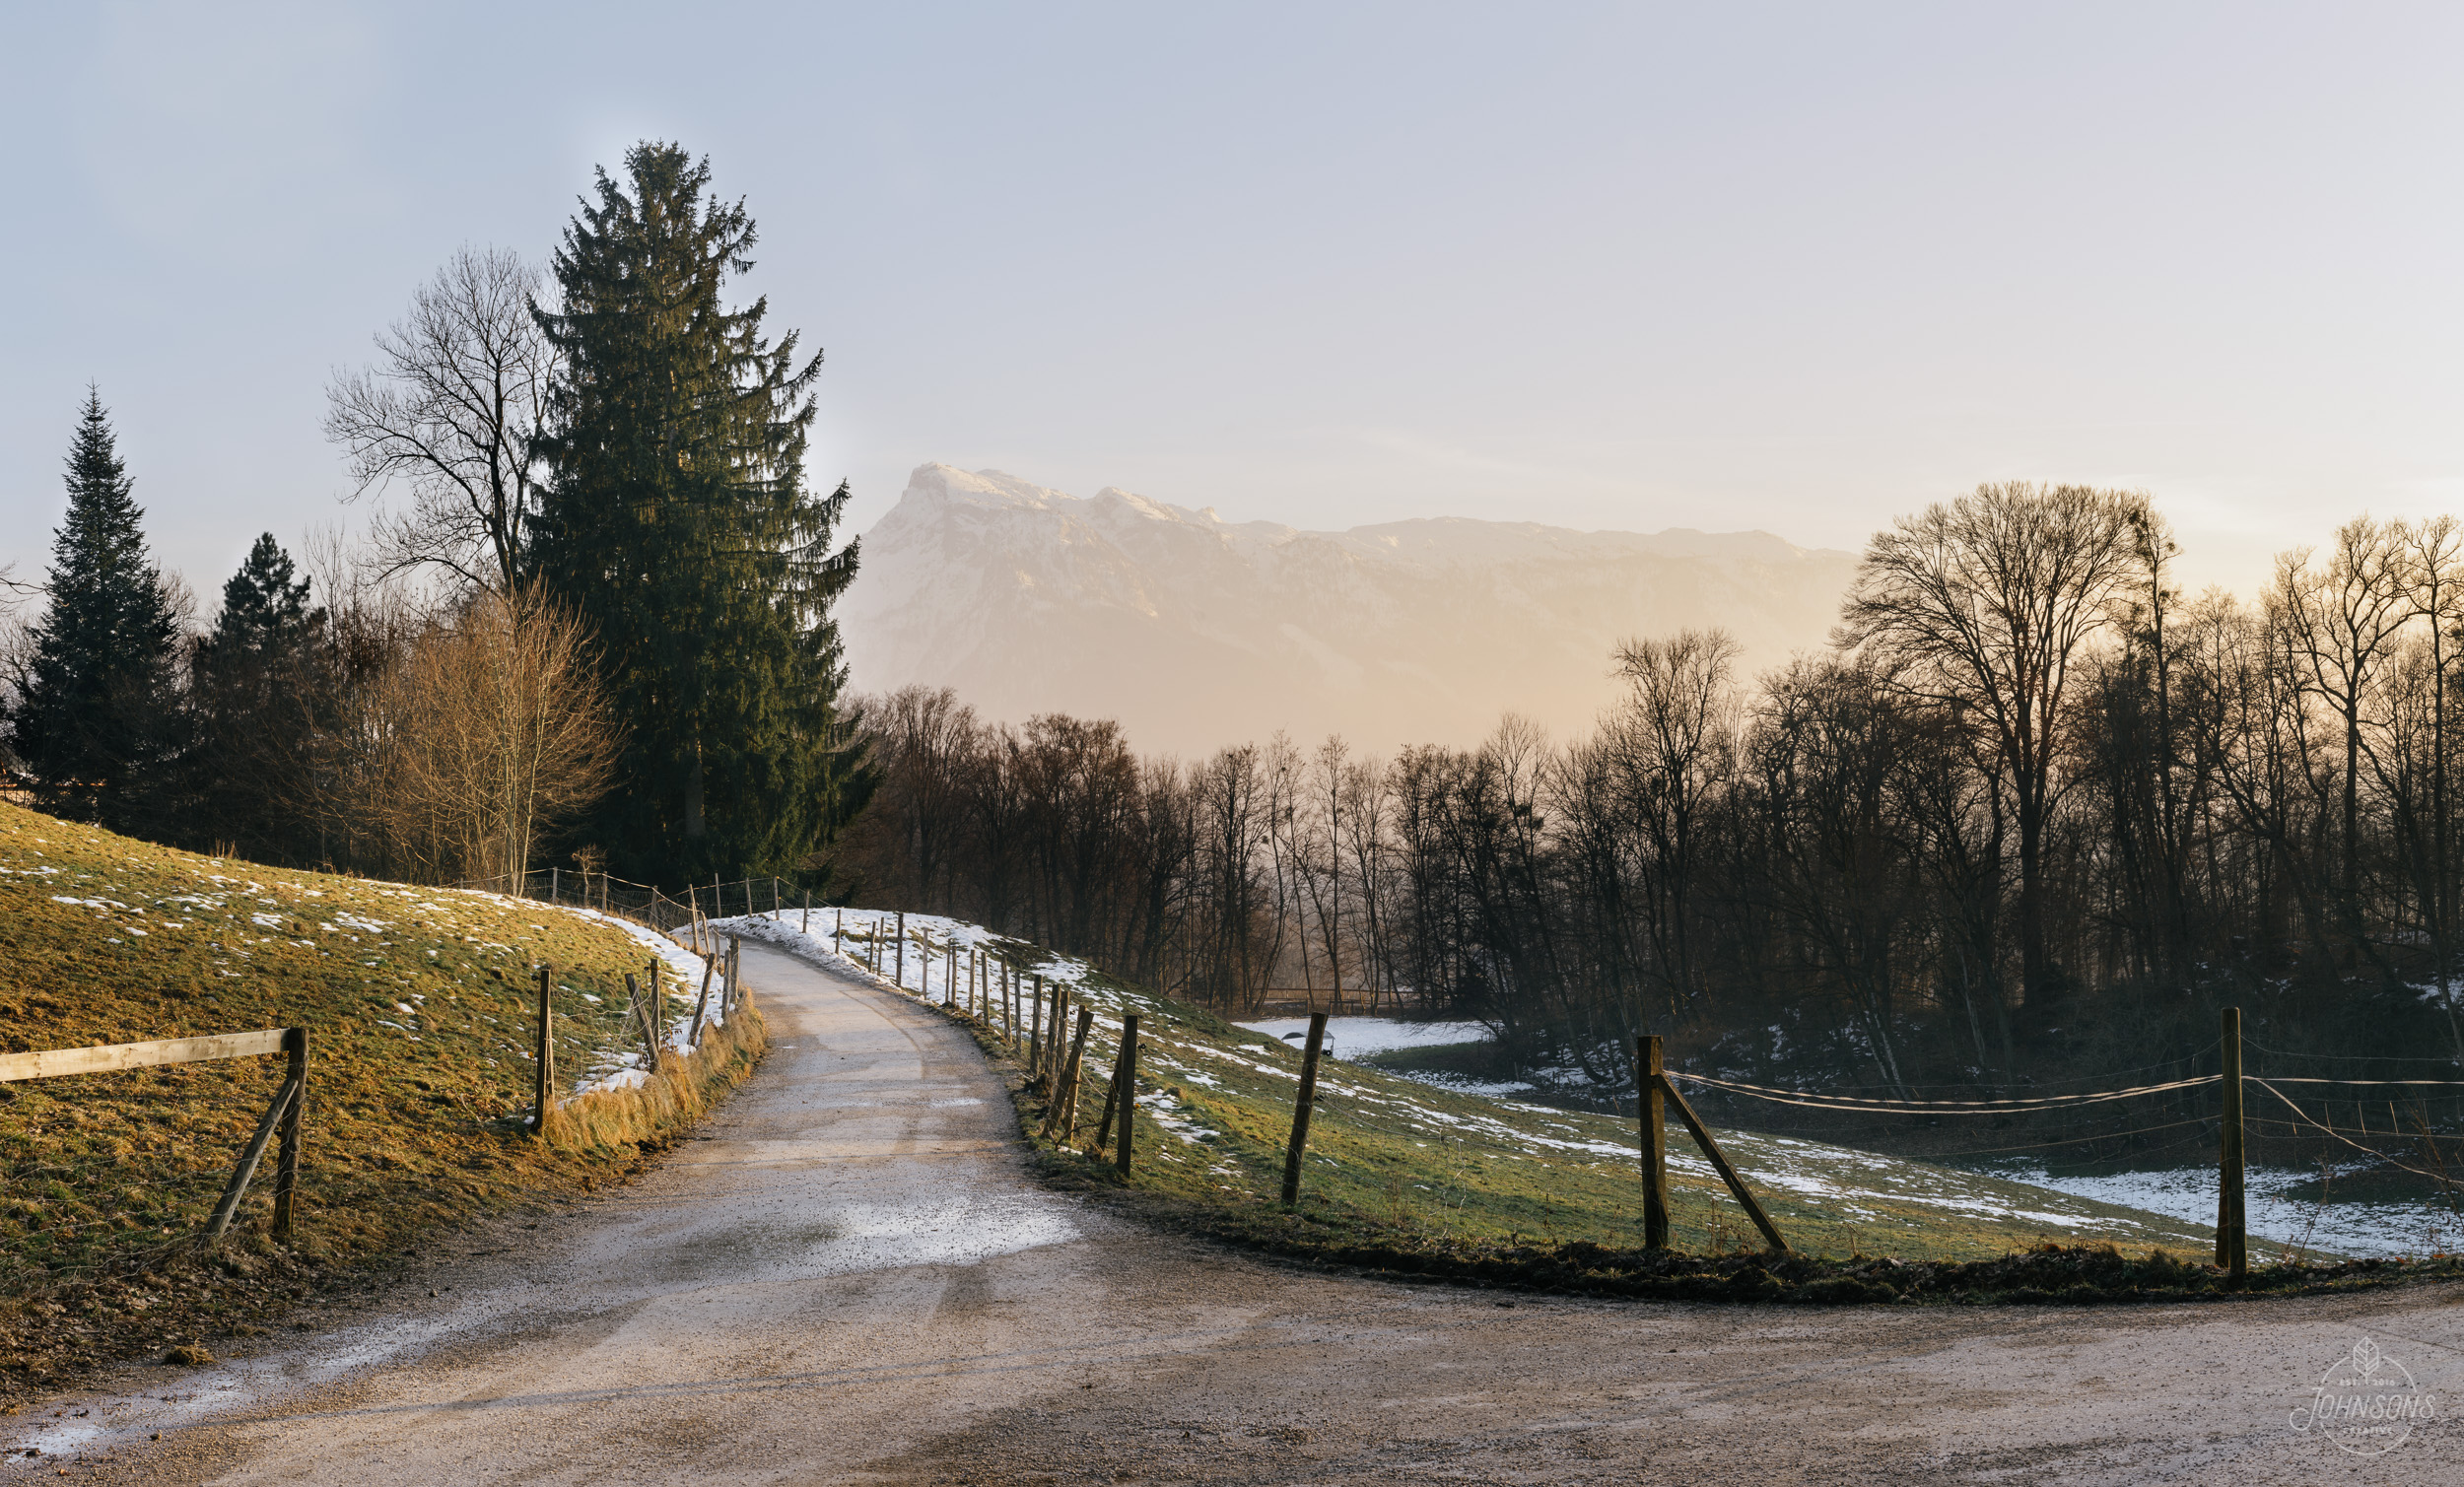 Sony a7rii  55mm 1.8  f14  1/13 sec  ISO 50  5 image stitched panorama    This location is about a 10 minute walk West of the Museum Der Moderne Salzburg. I am a bit bummed because the composition is so great but the trees look sad and the melted snow isn't my favorite, so it's on my list of spots to return to in the fall or snowy times.